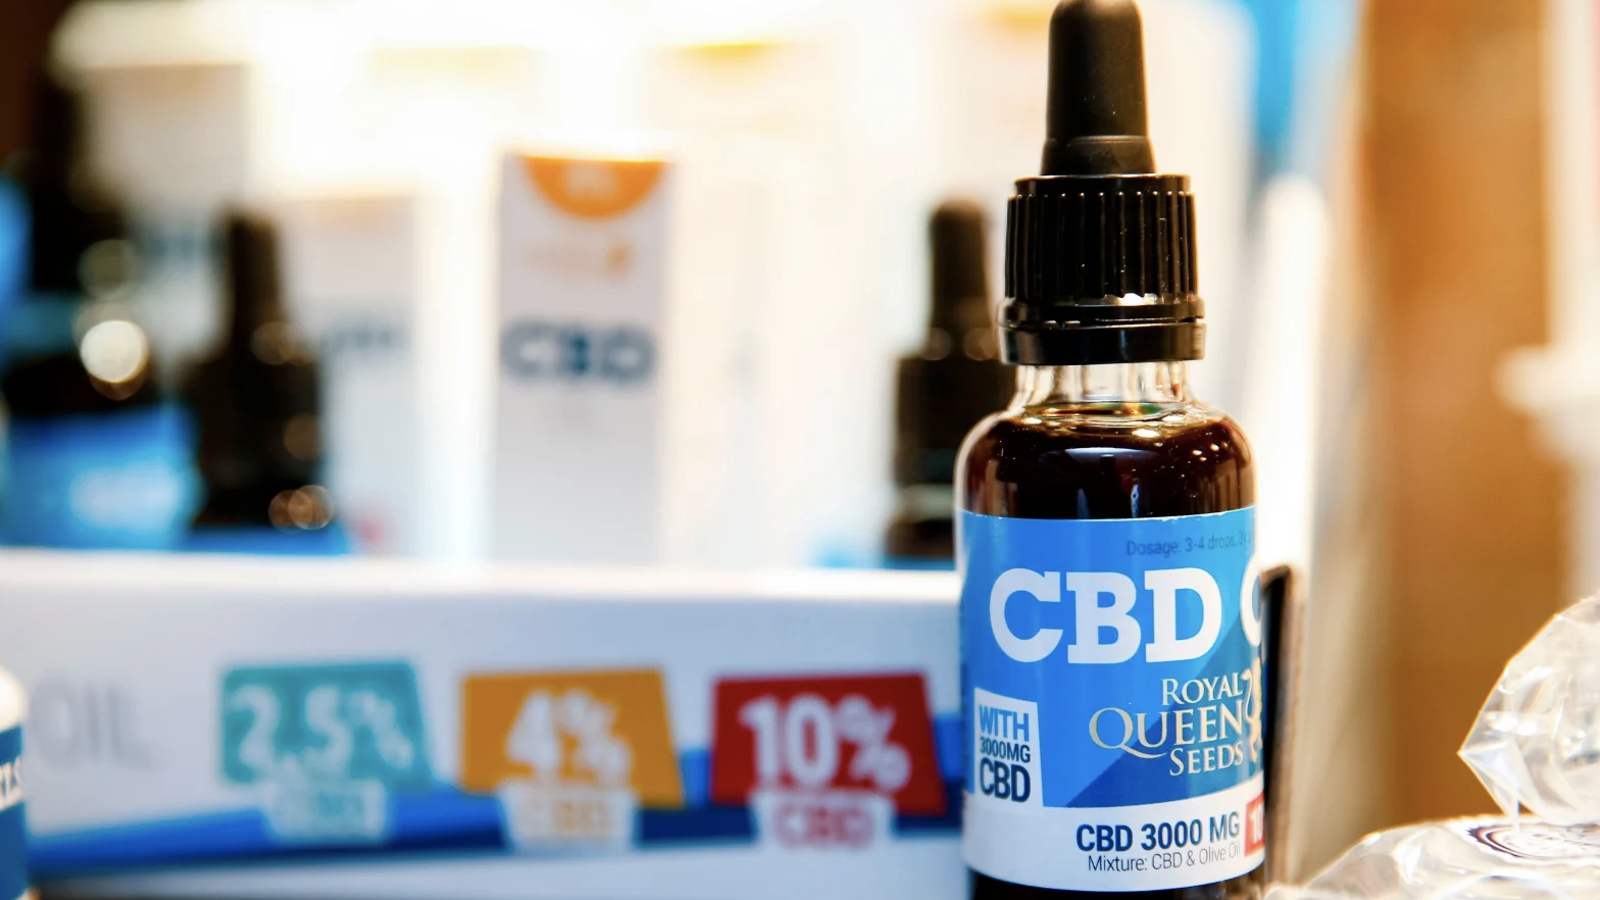 Traveling With CDB Oil: What You Need to Know